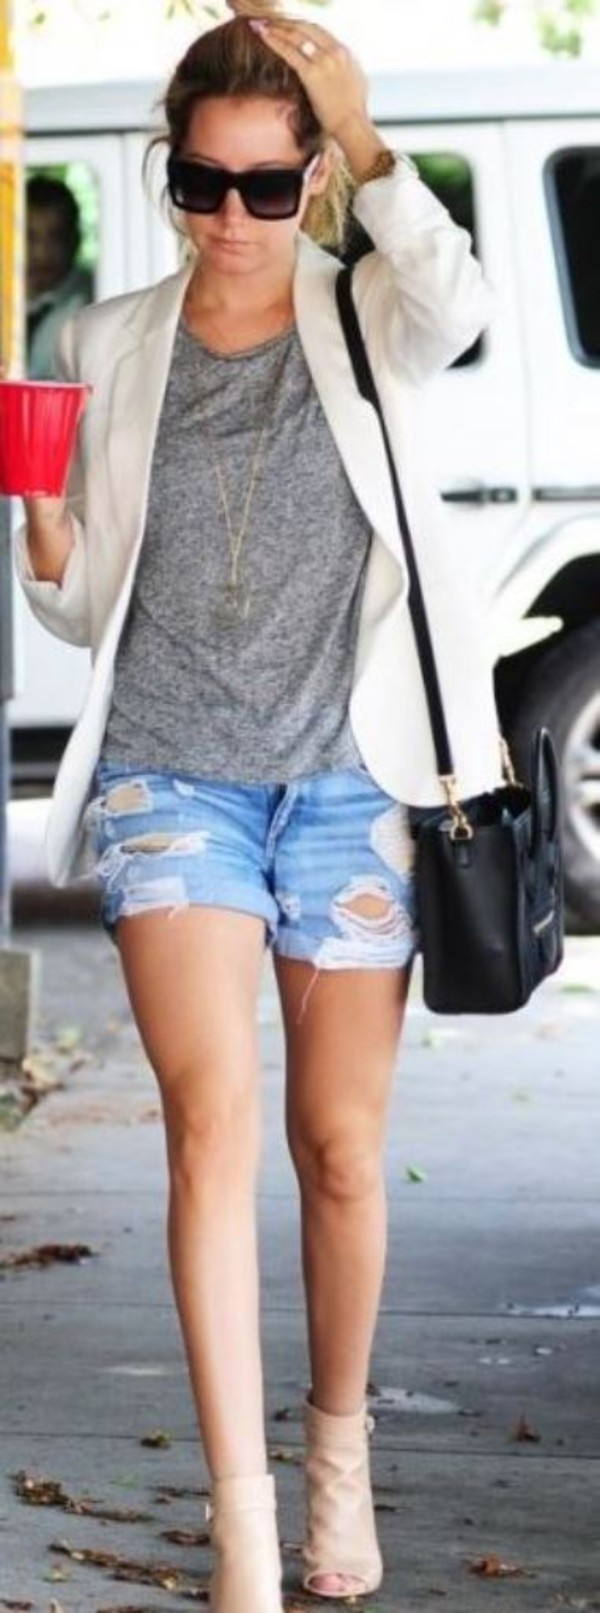 shorts ashley tisdale shoes